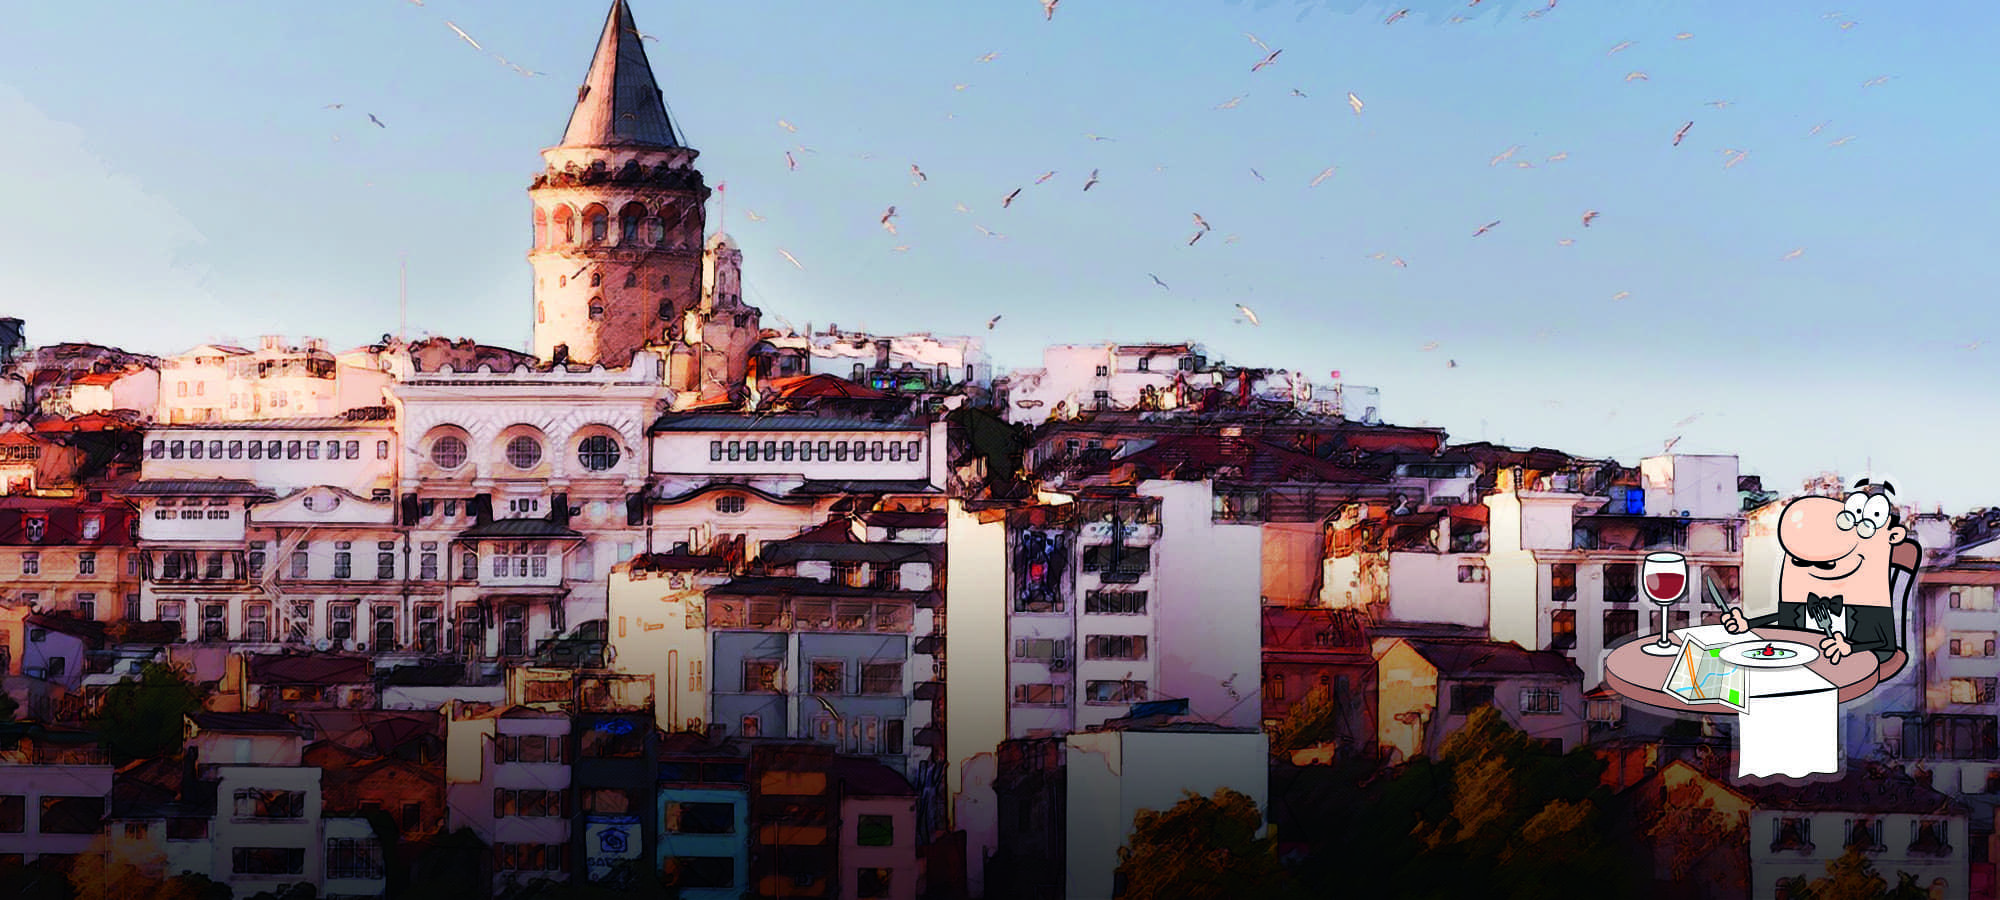 Istanbul: two world parts in one city